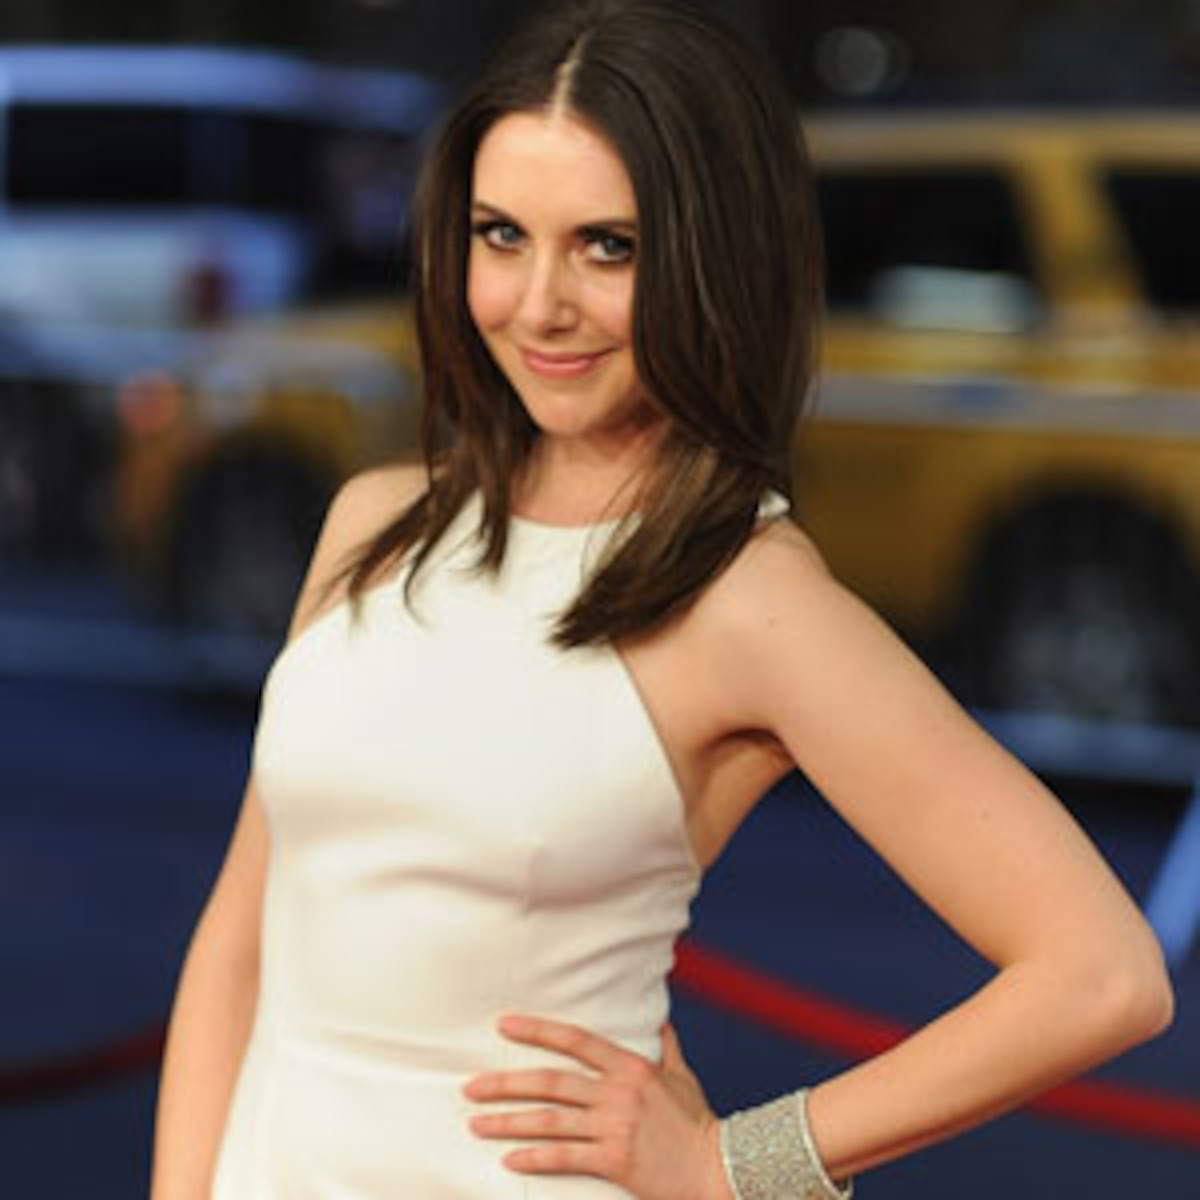 Alison Brie Leaked Nude Photos alison brie: i know that naked photos exist of me | e! news uk